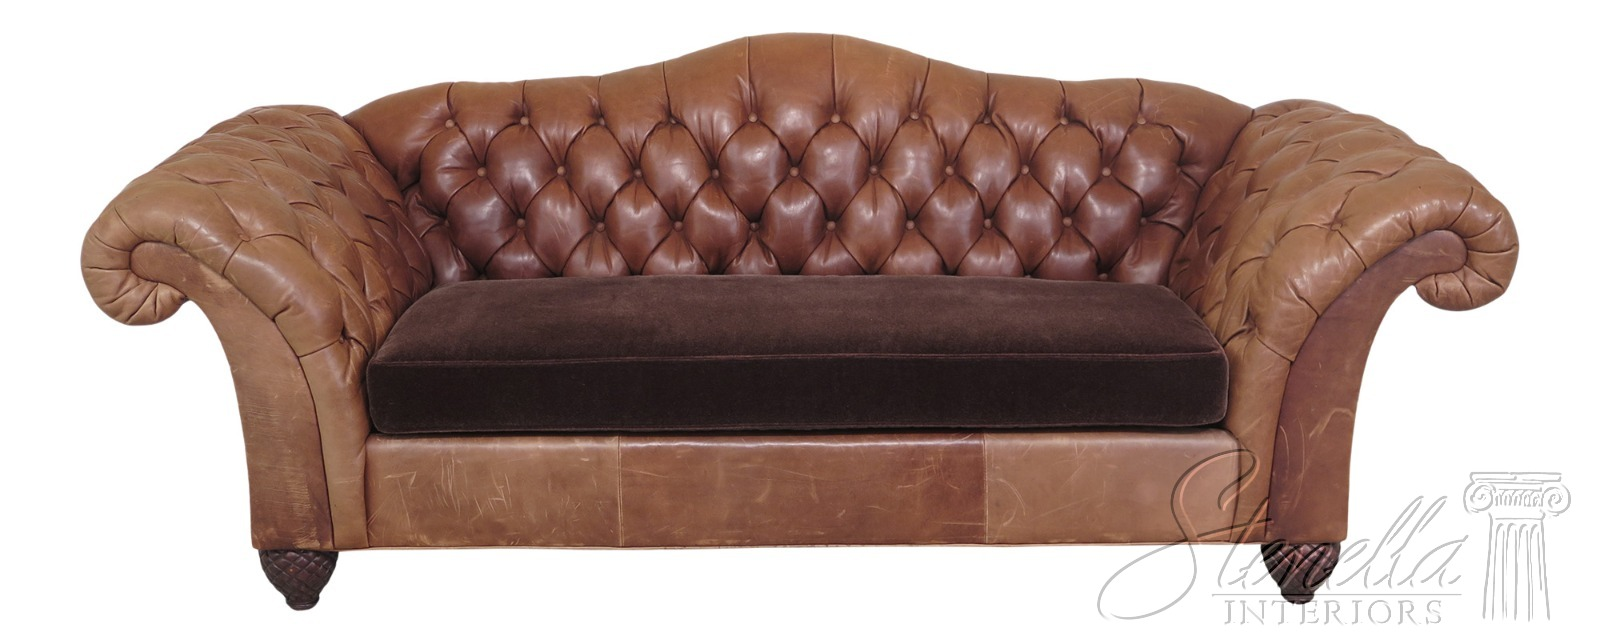 Tufted Leather Chesterfield Style